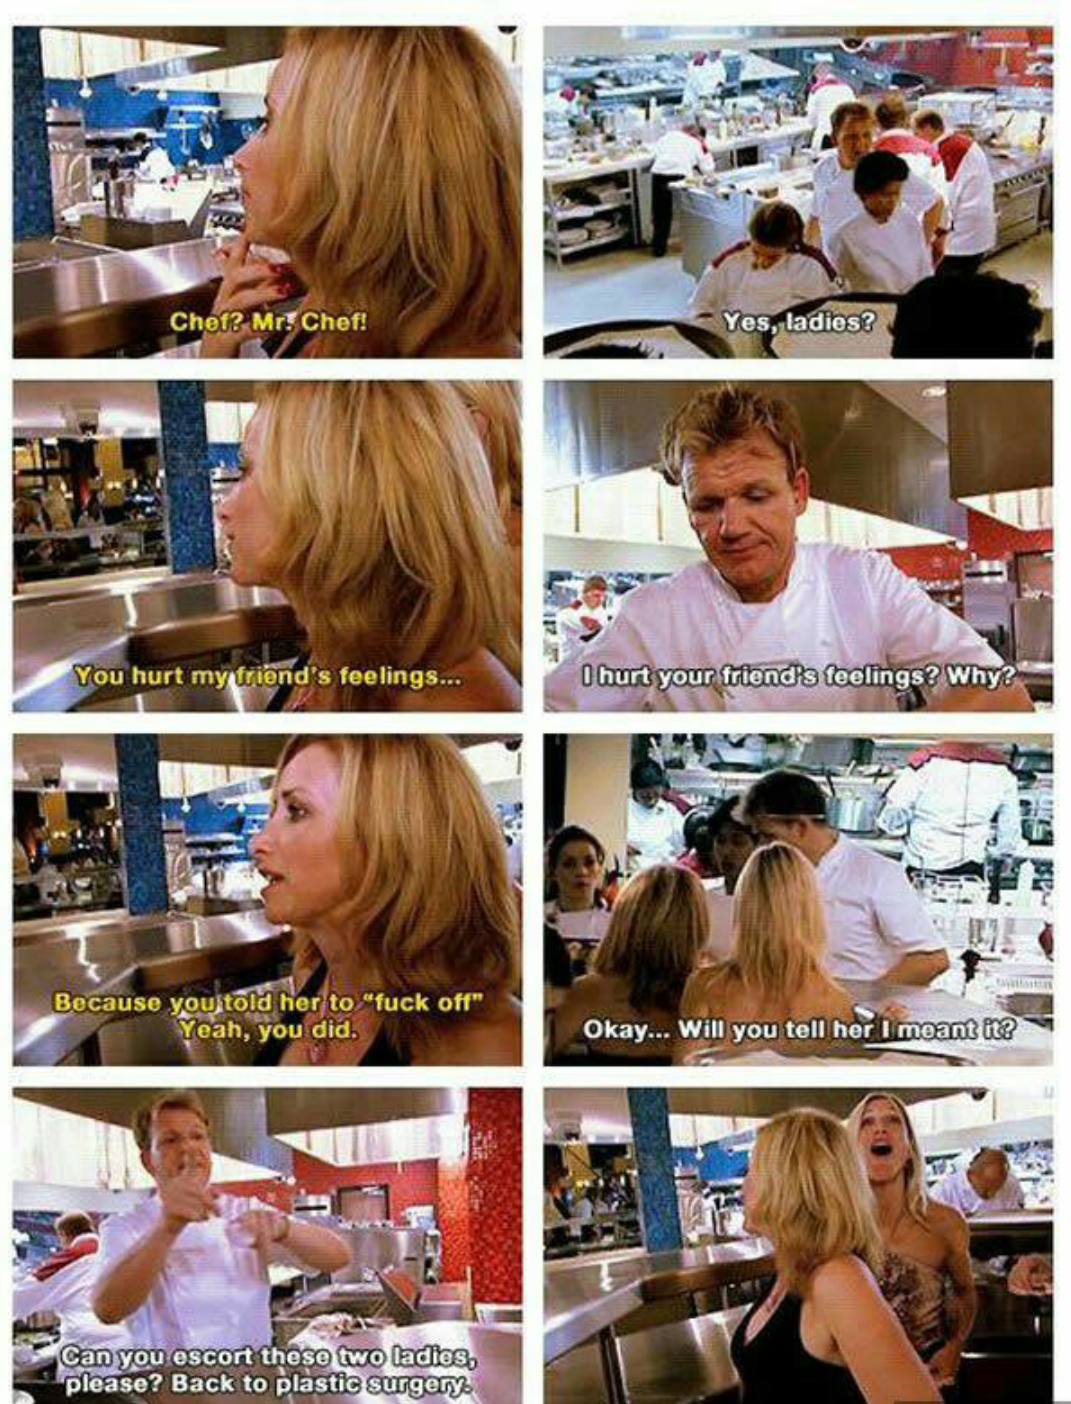 Gordon Ramsay telling it like it is...